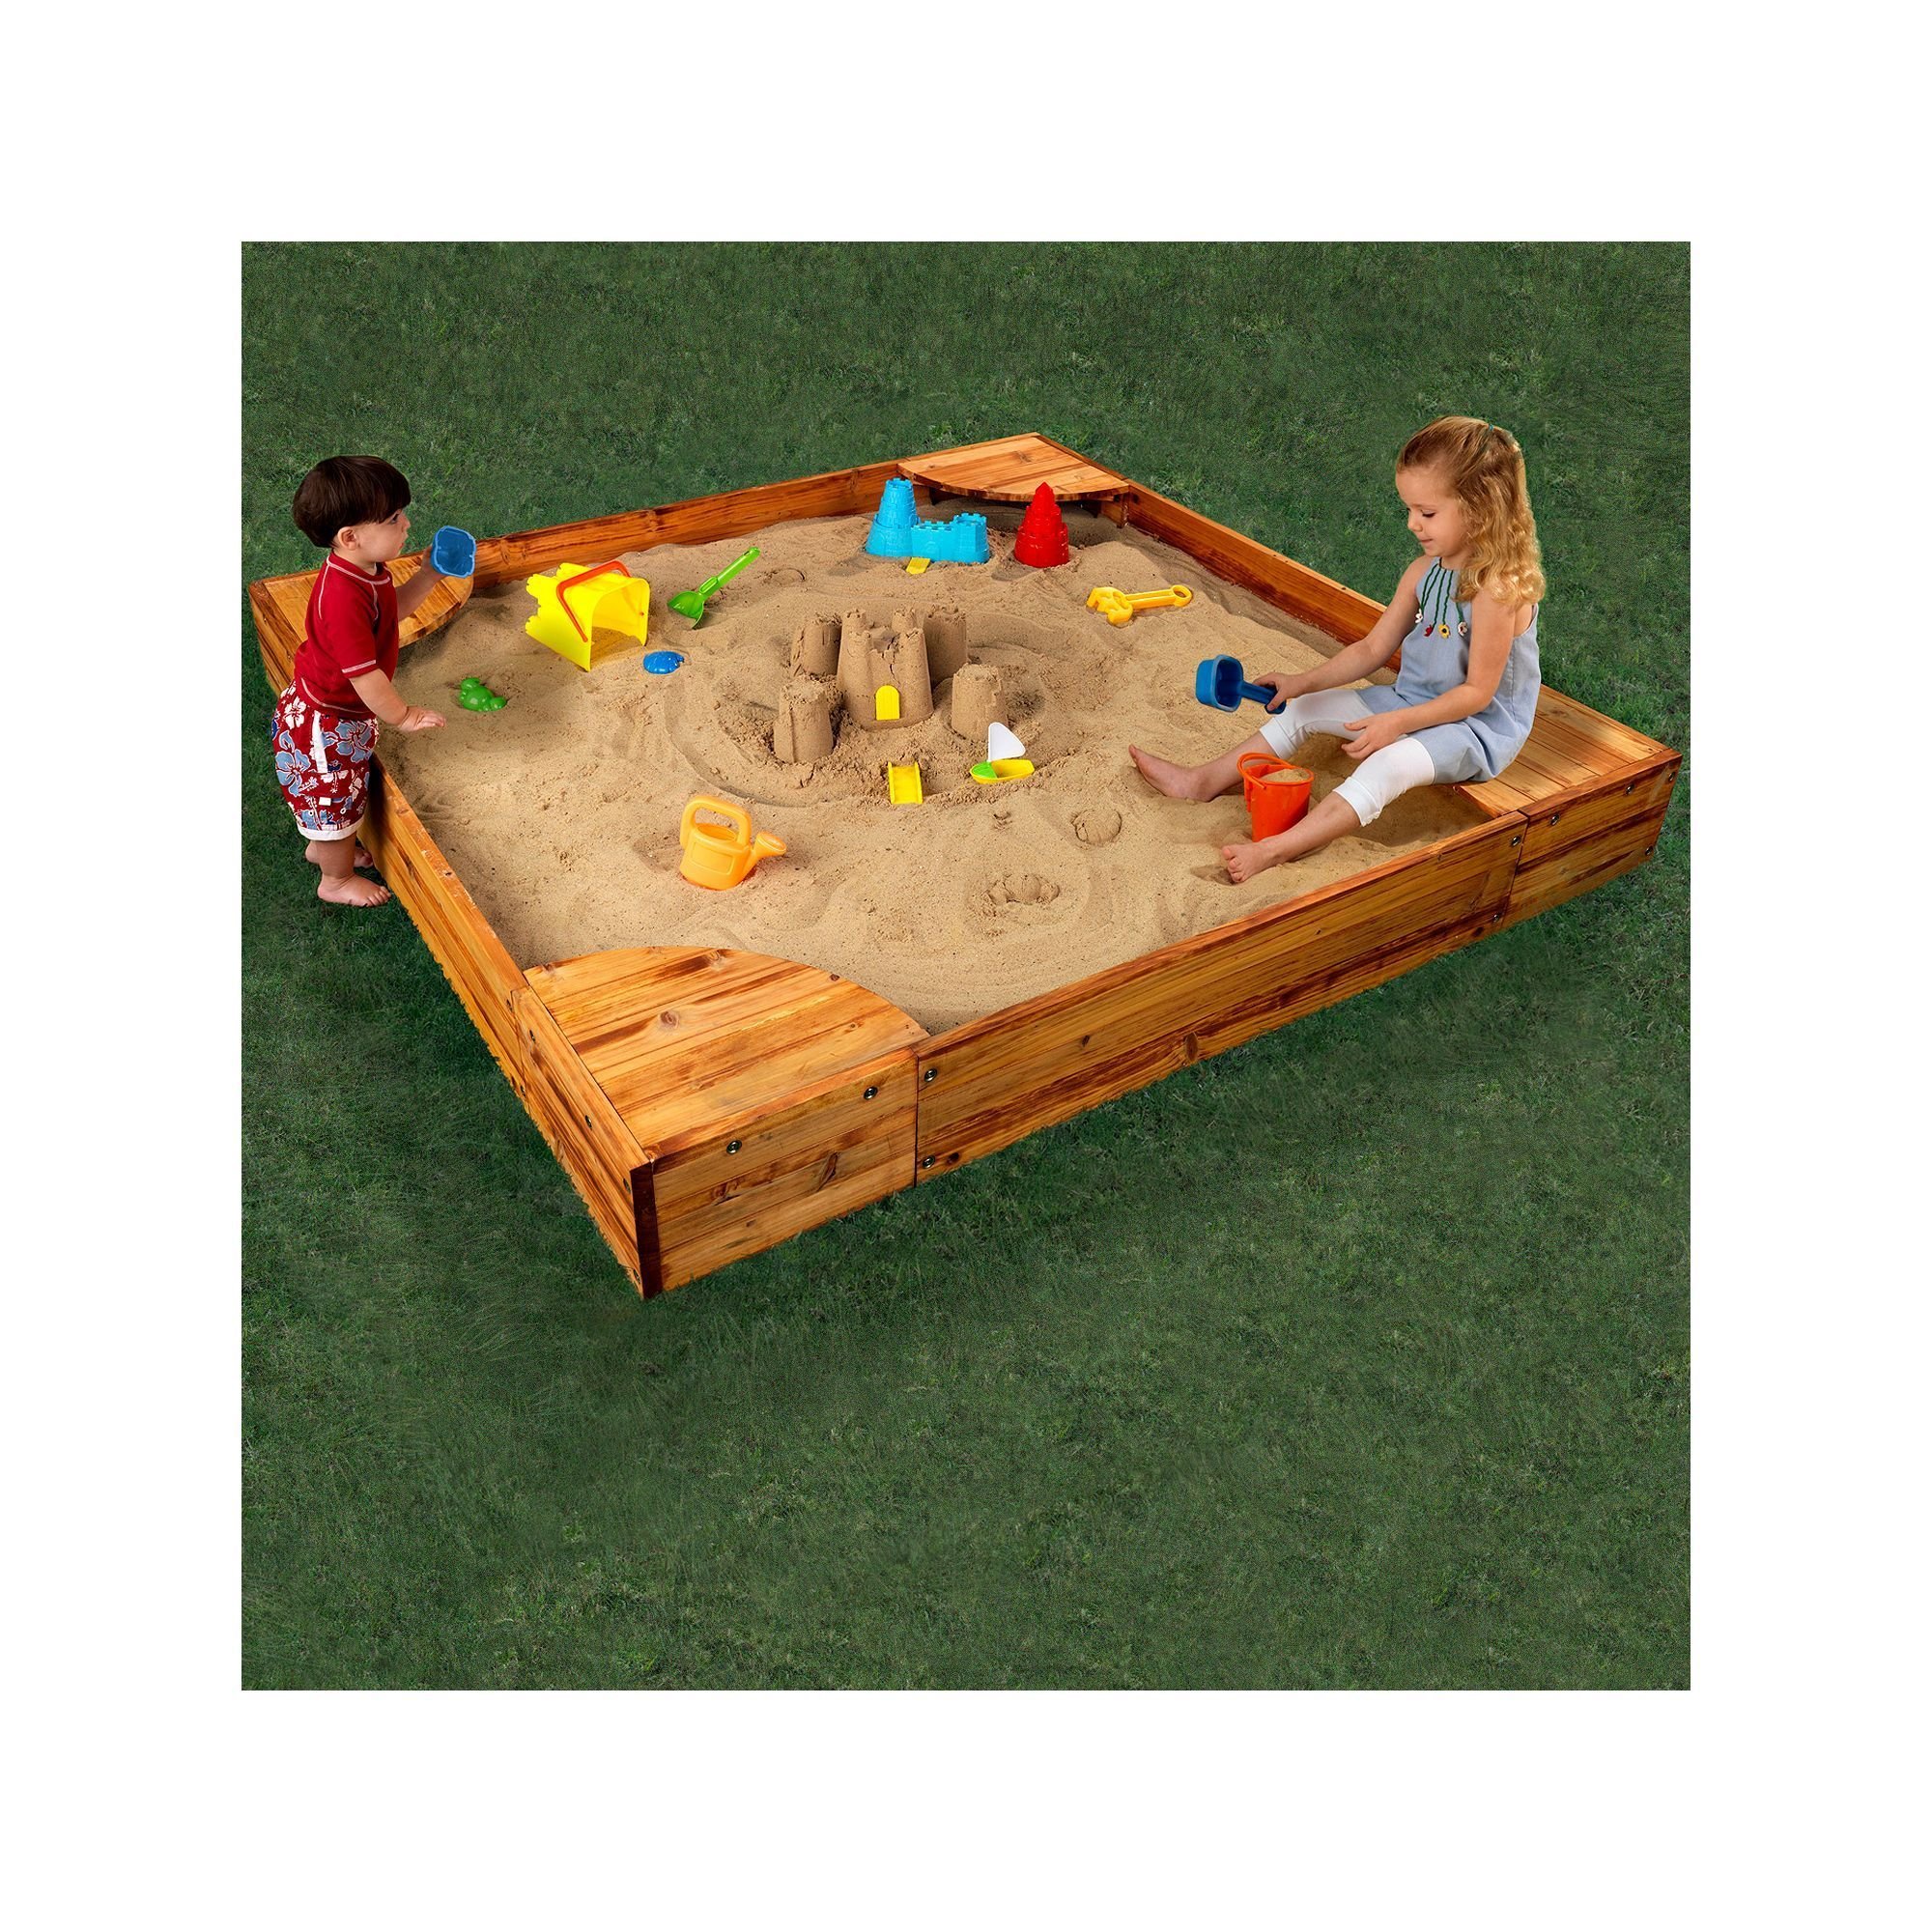 Kidkraft Backyard Sandbox kidkraft backyard sandbox, multicolor | products | pinterest